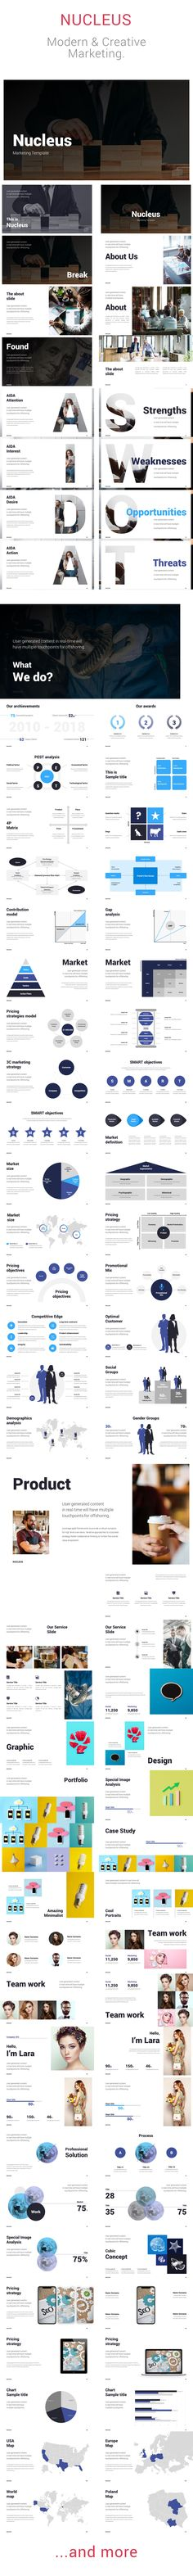 About theme Nucleus -Marketing ToolBox is multipurpose presentation template which includes most needed materials like popular marketing models, analysis, research, charts, graphs and maps.Features...